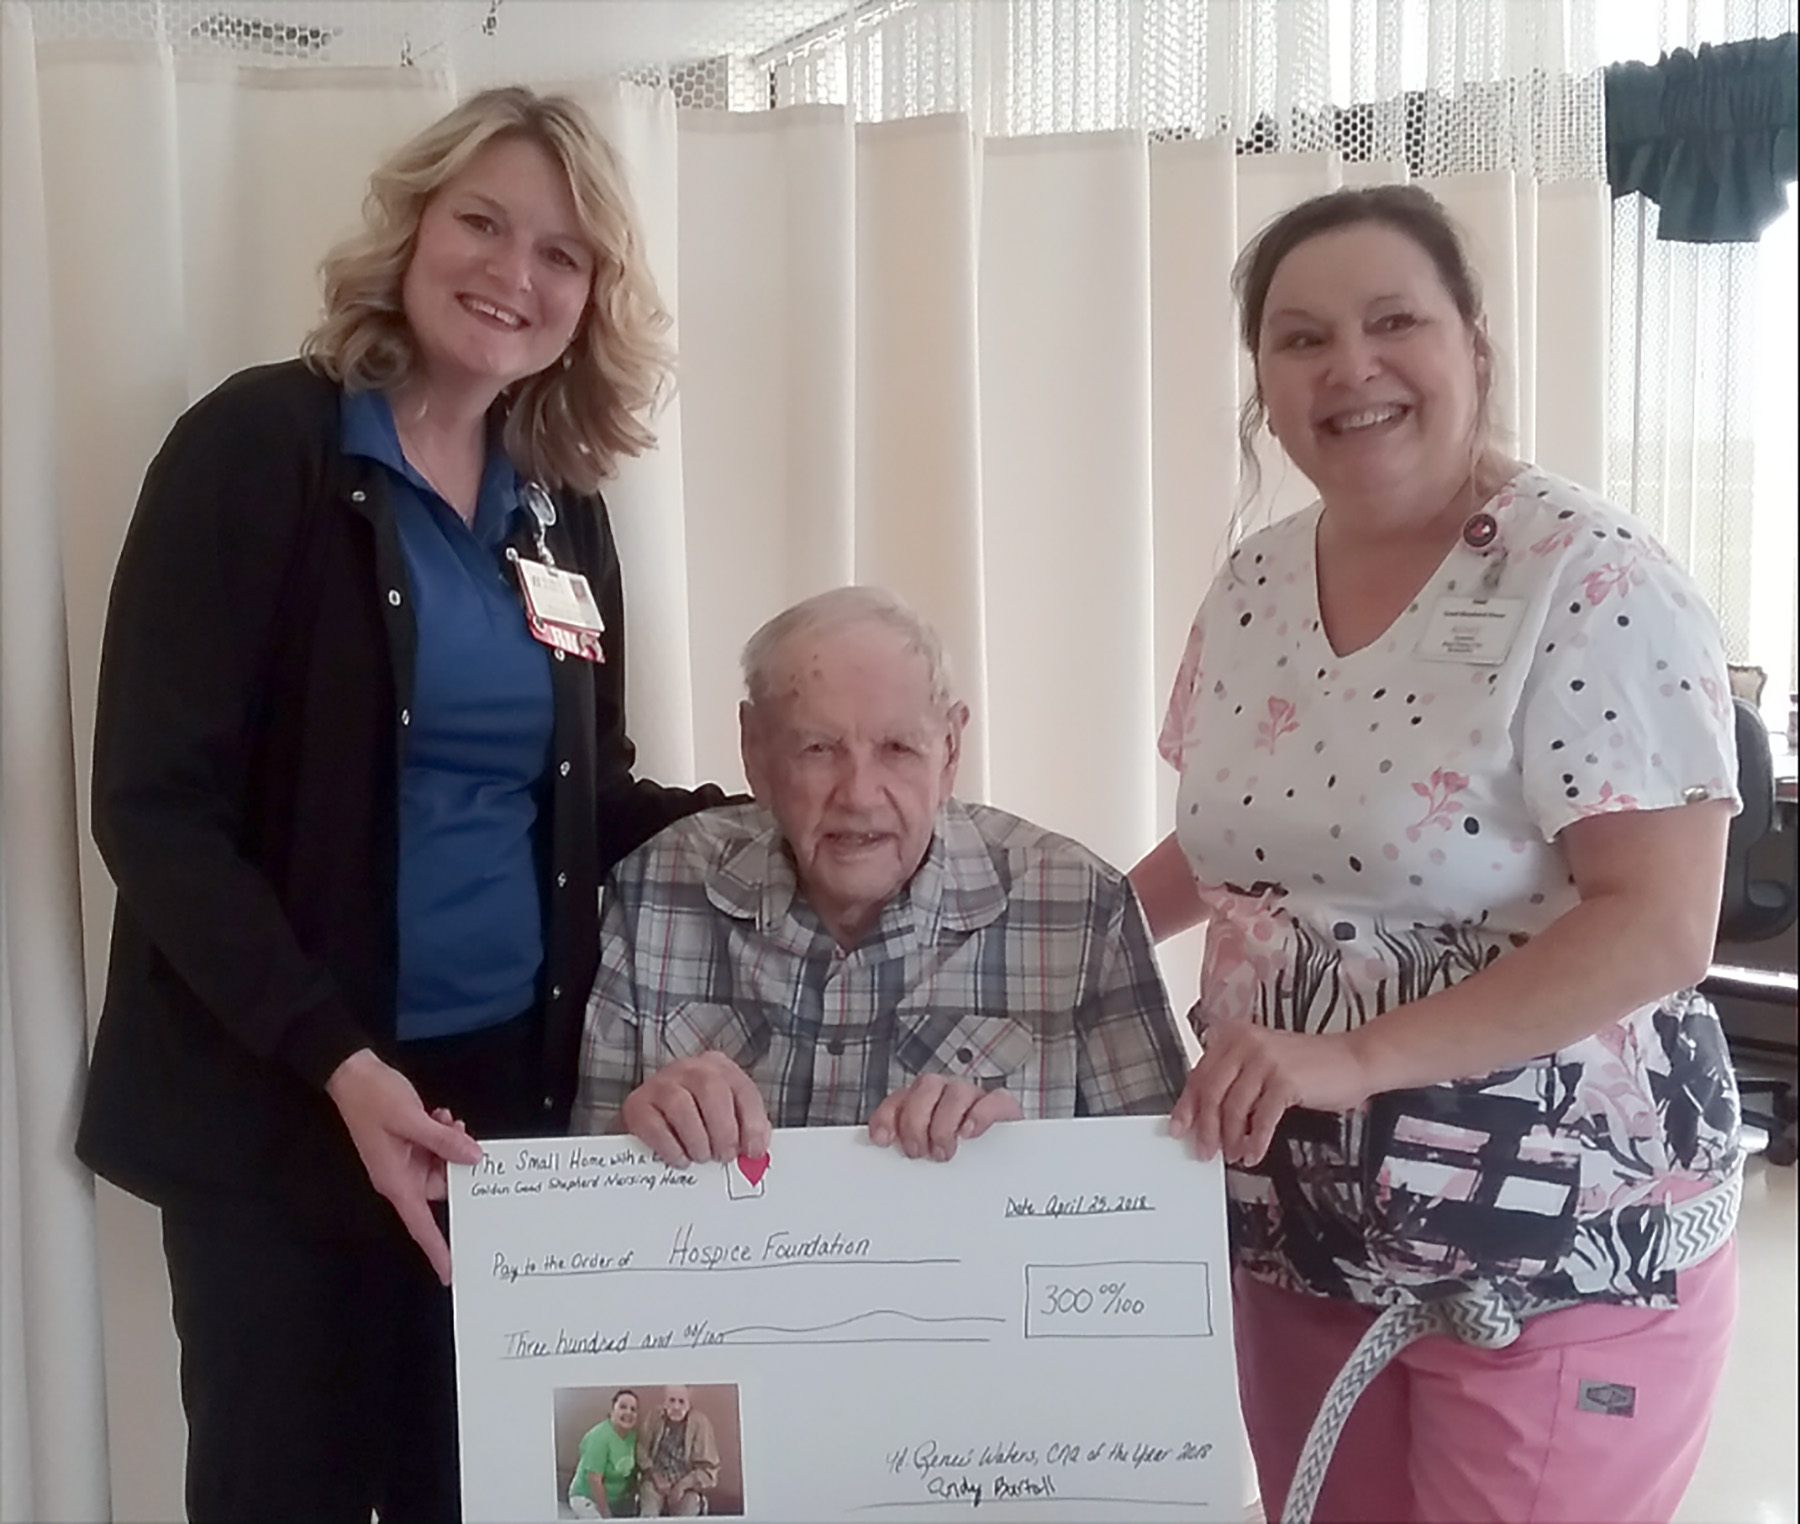 Melinda Thompson Blessing Hospice and 102 year old Andrew Bartell and Golden Good Shepherd Home CNA Renee Waters with $300 donation to Blessing Hospice